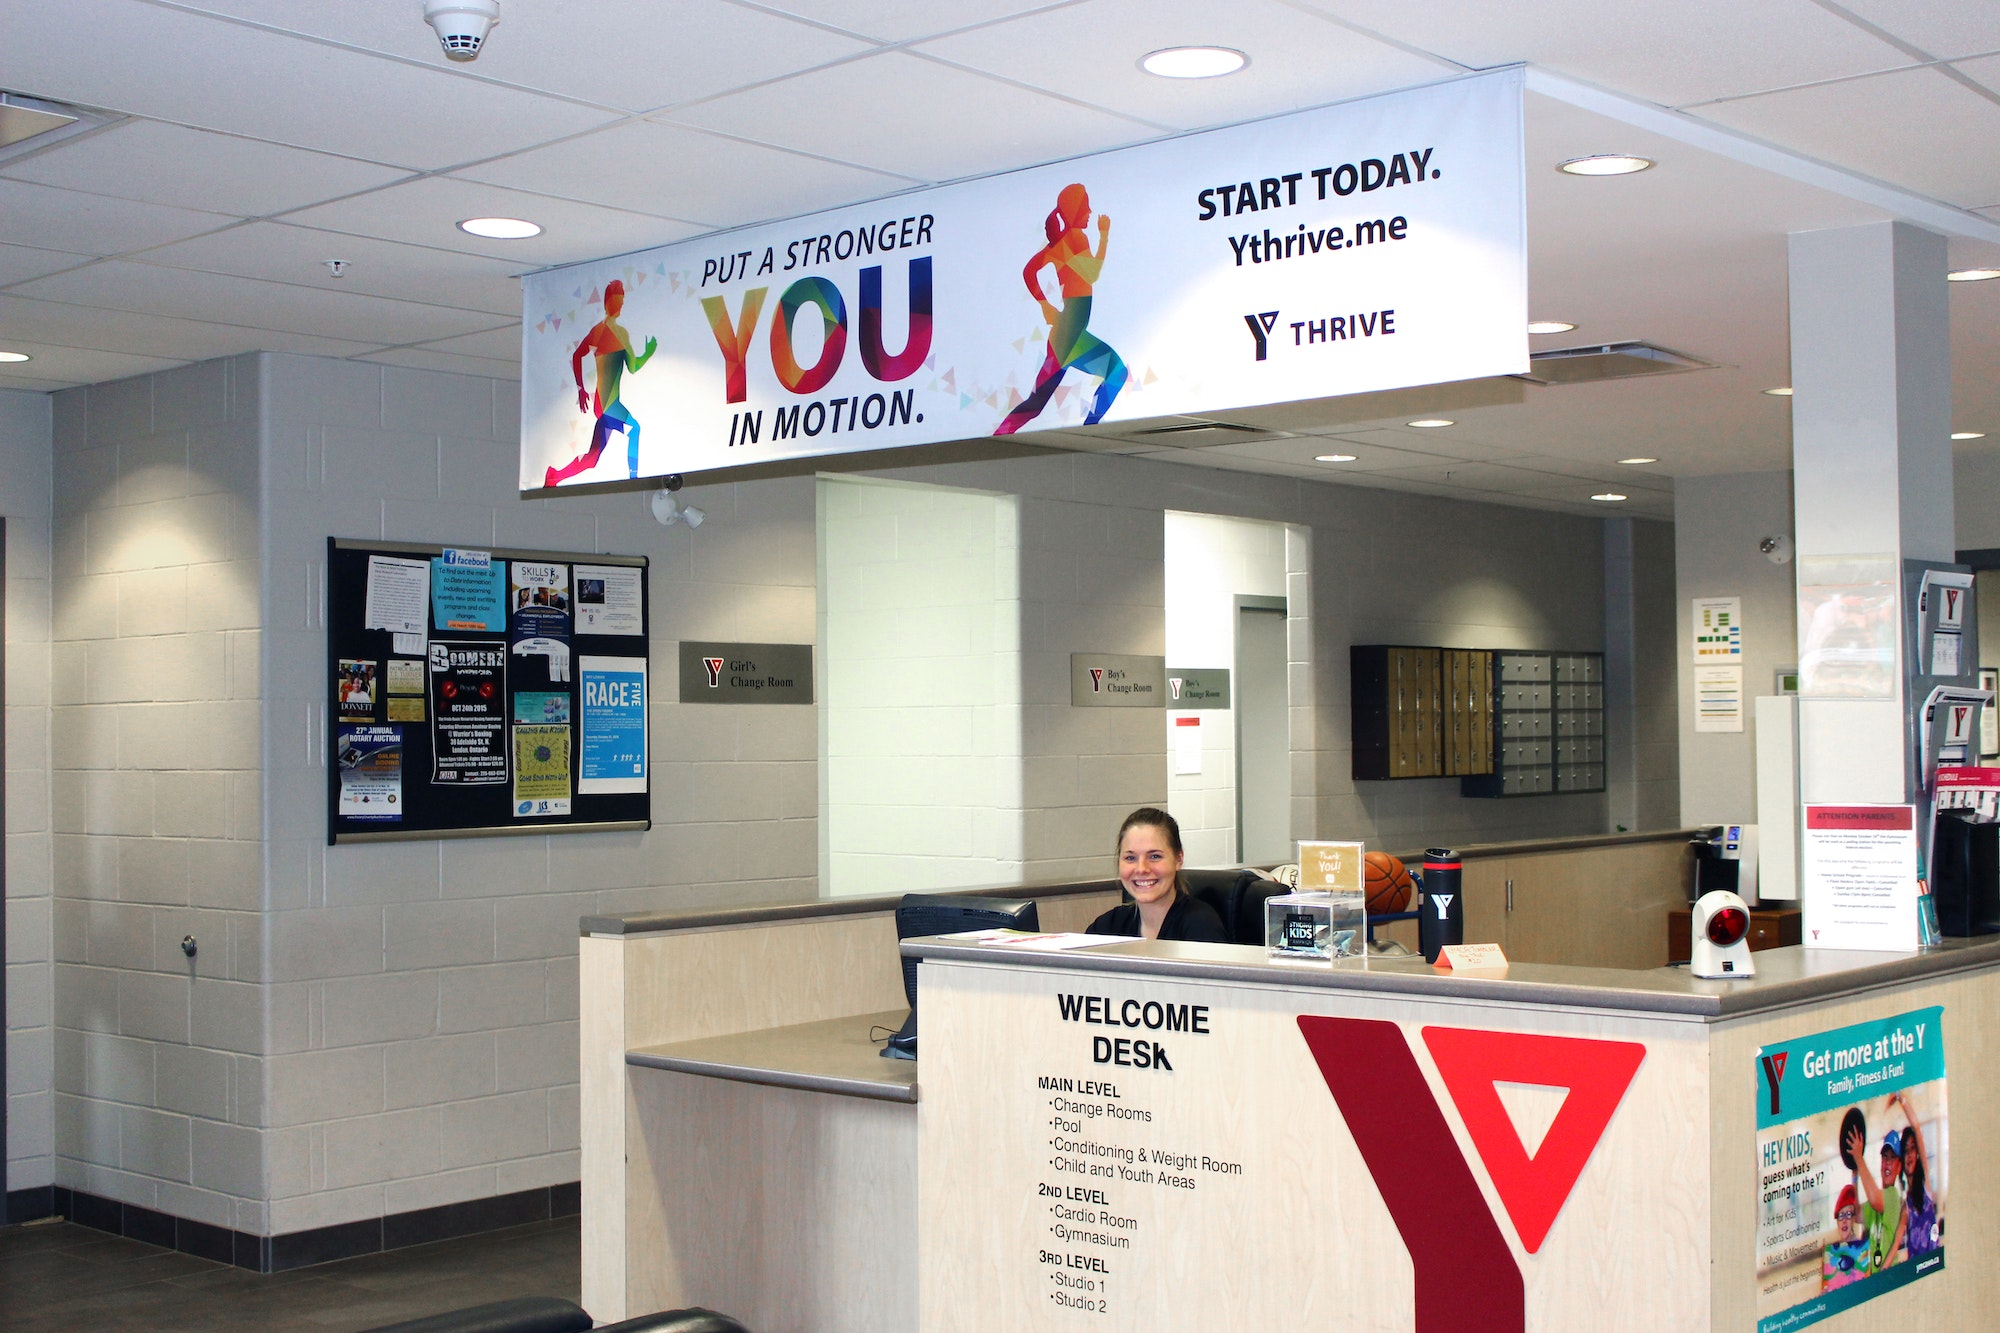 YThrive signage on display at the Y